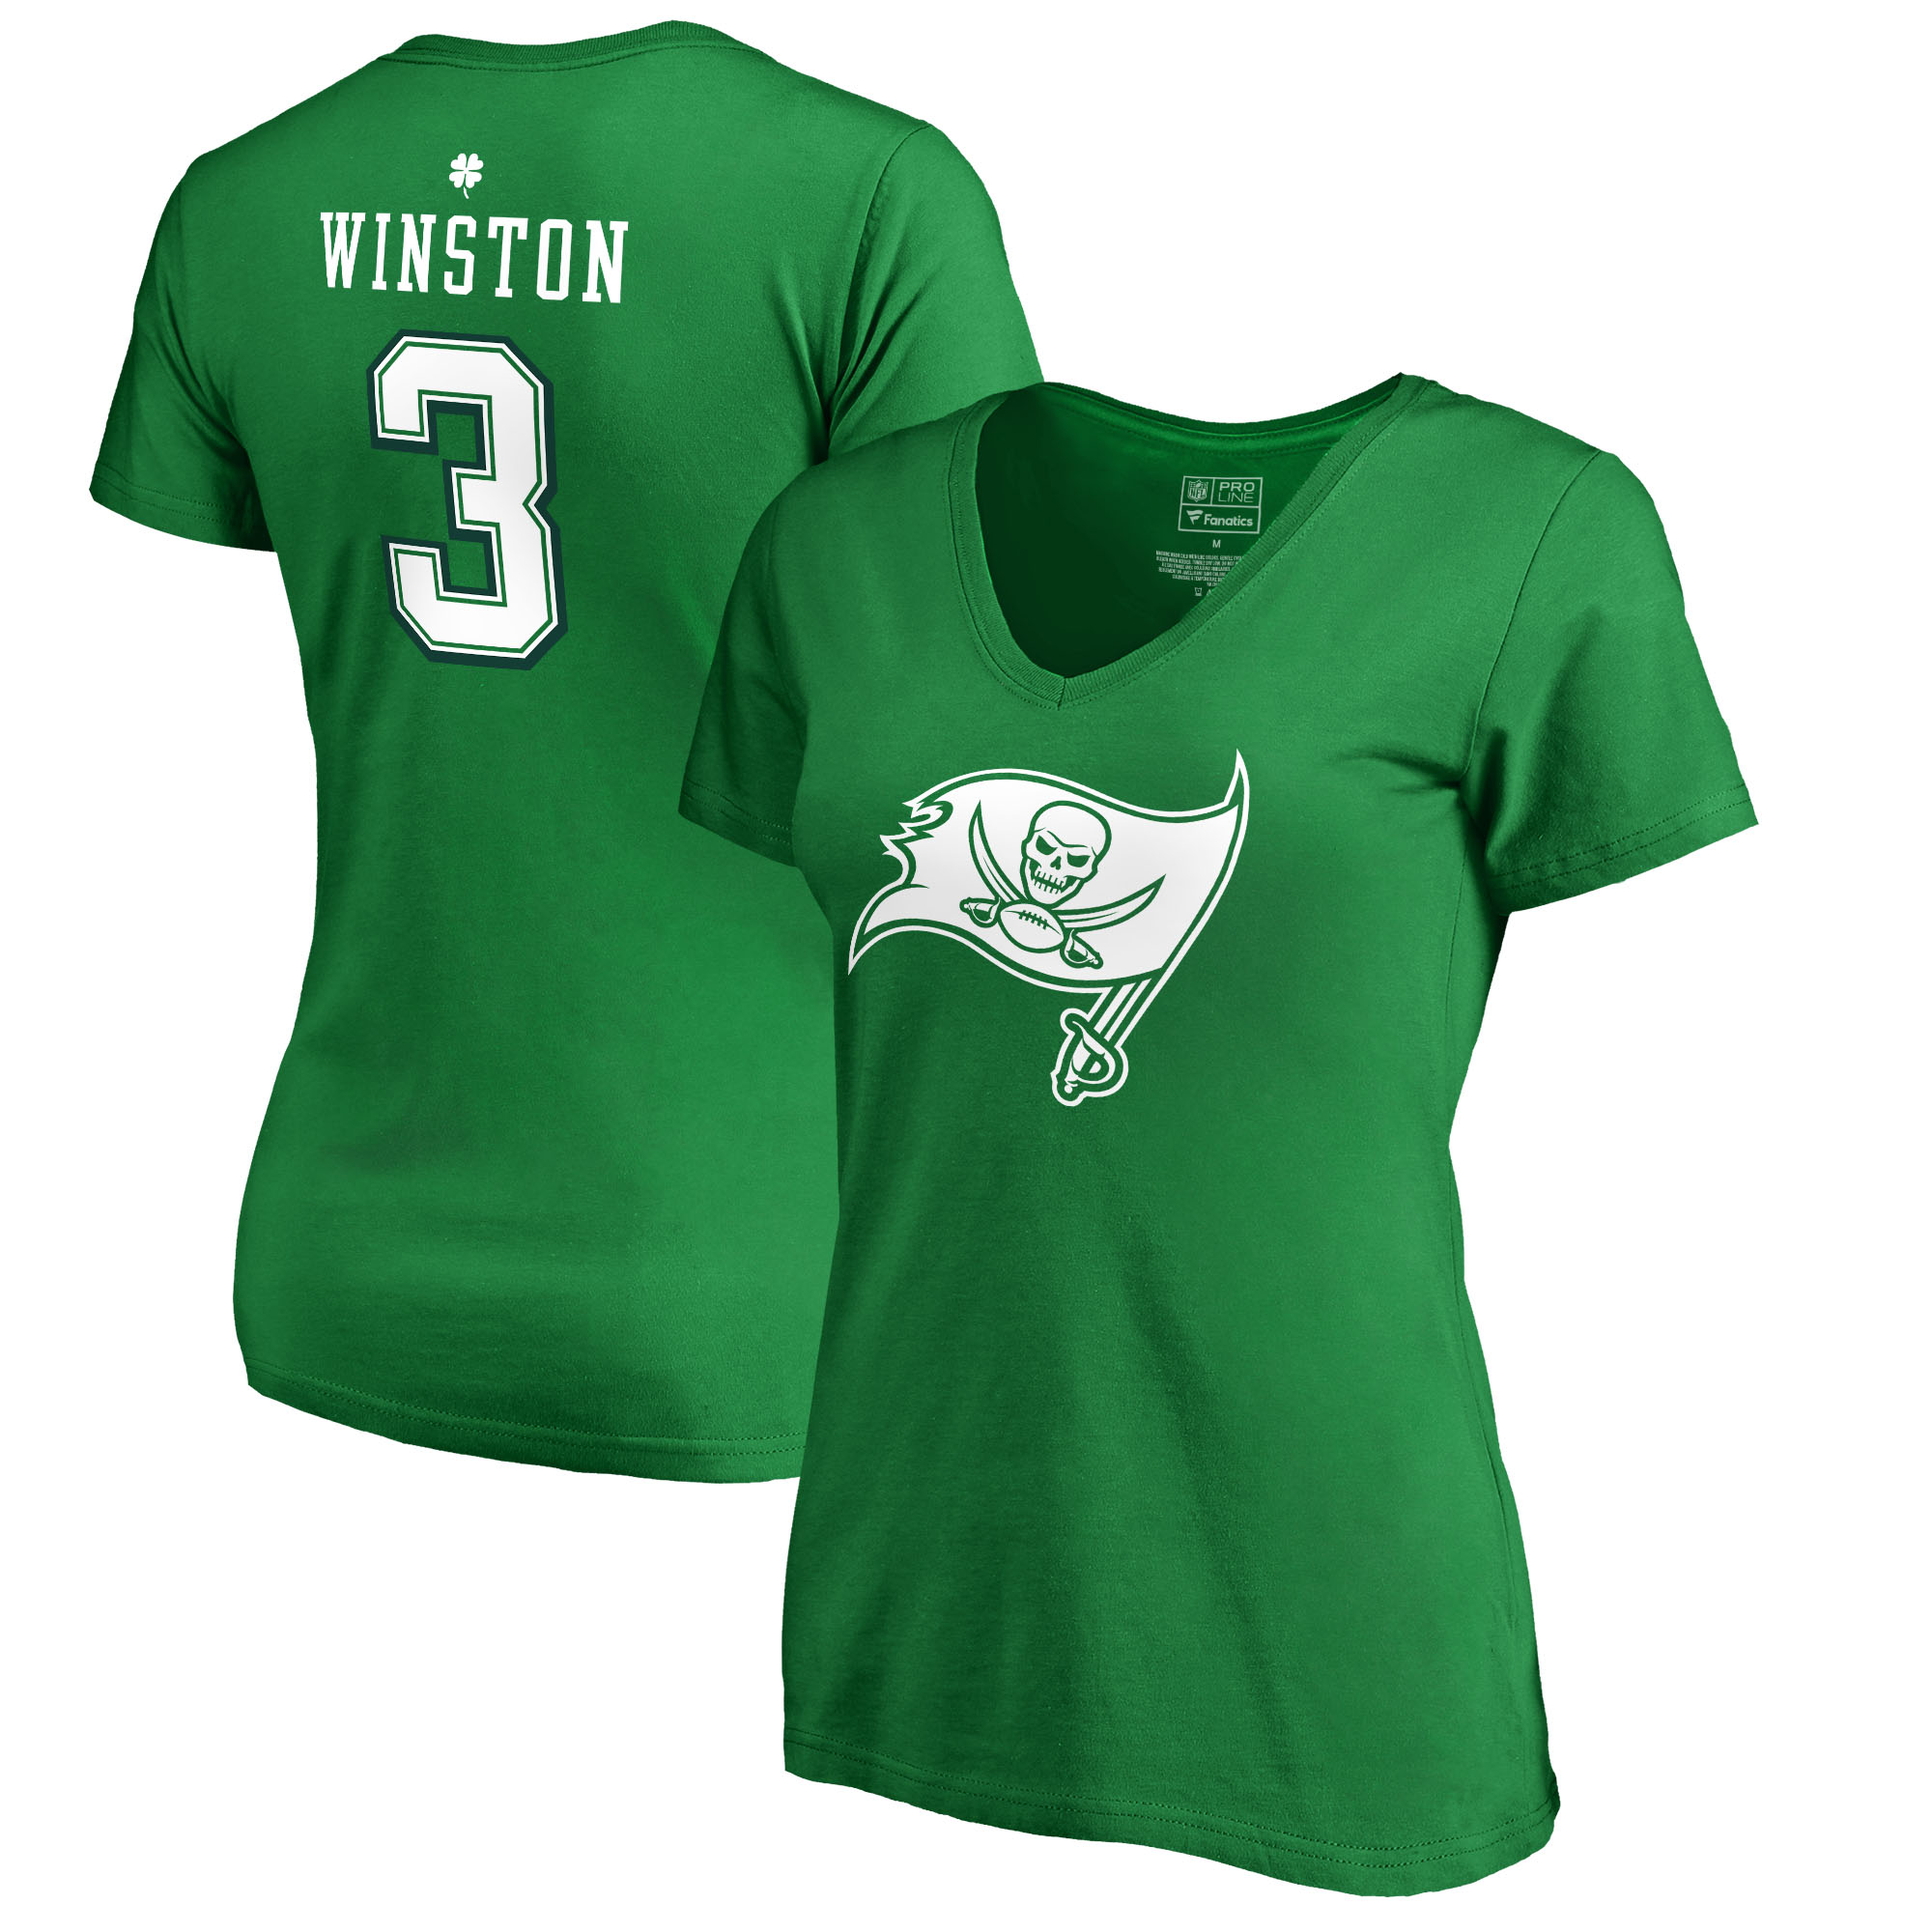 Jameis Winston Tampa Bay Buccaneers NFL Pro Line by Fanatics Branded Women's St. Patrick's Day Icon V-Neck Name & Number T-Shirt - Kelly Green